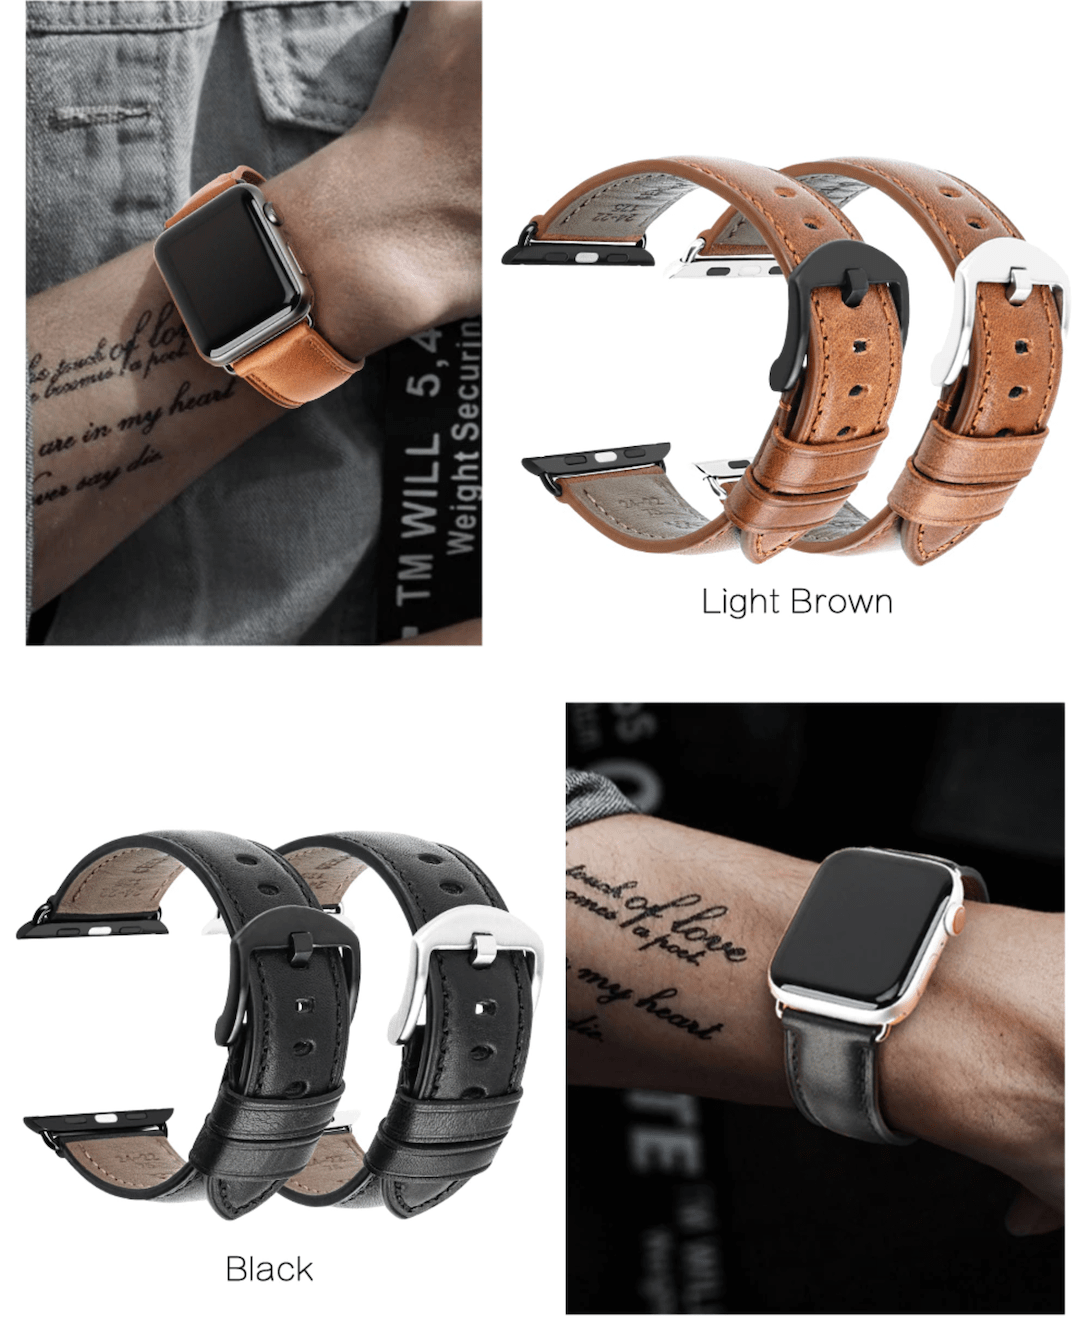 Genuine leather apple watch premium high quality black straps in india